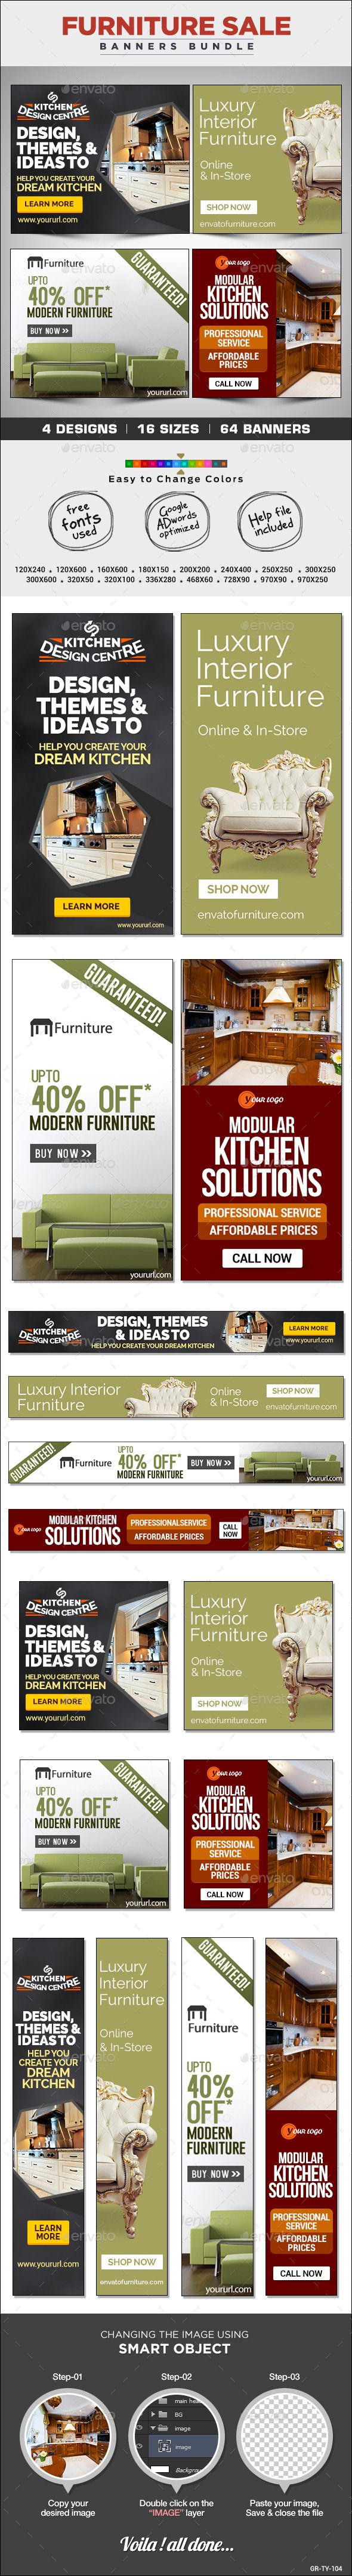 Furniture Store Banners Bundle - 4 Sets | Banners